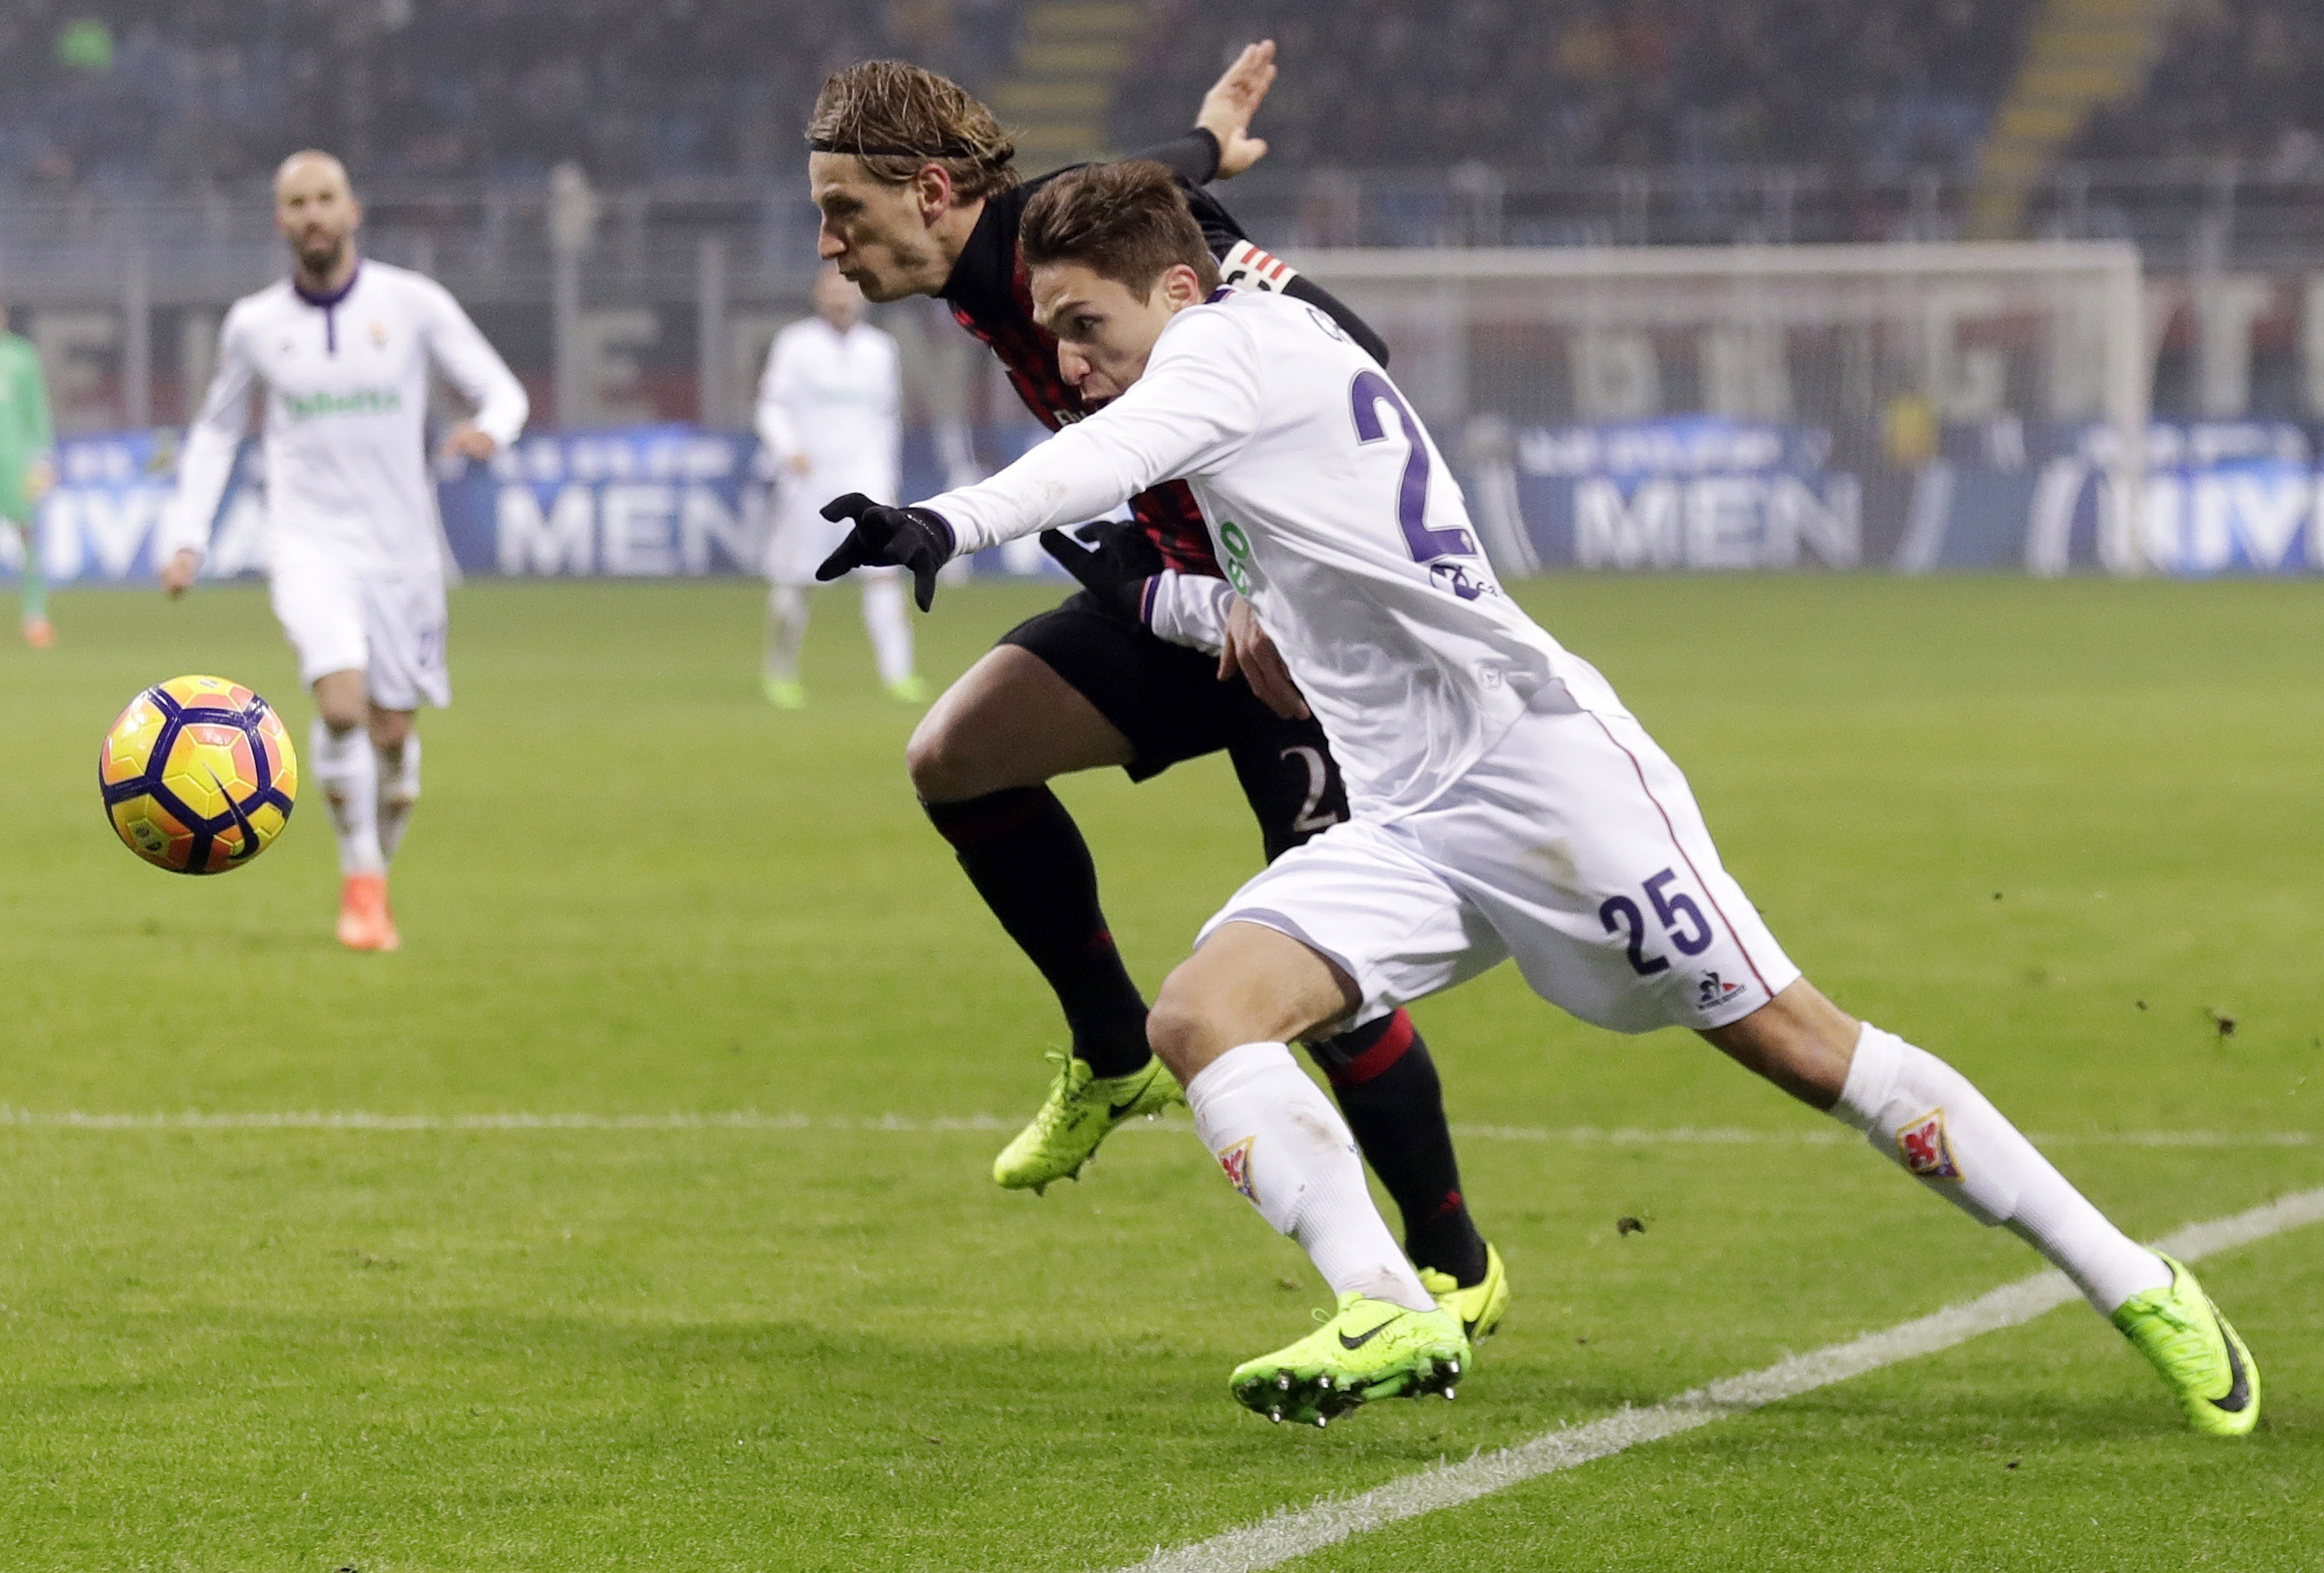 In this Feb. 19, 2017 file photo, Fiorentina's Federico Chiesa (right) and AC Milan's Ignazio Abate go for the ball during a Serie A soccer match at the San Siro stadium in Milan, Italy. Italy's hopes may rest on the shoulders of Federico Chiesa of Fiorentina who has already established himself in Italy's top tier, Serie A.